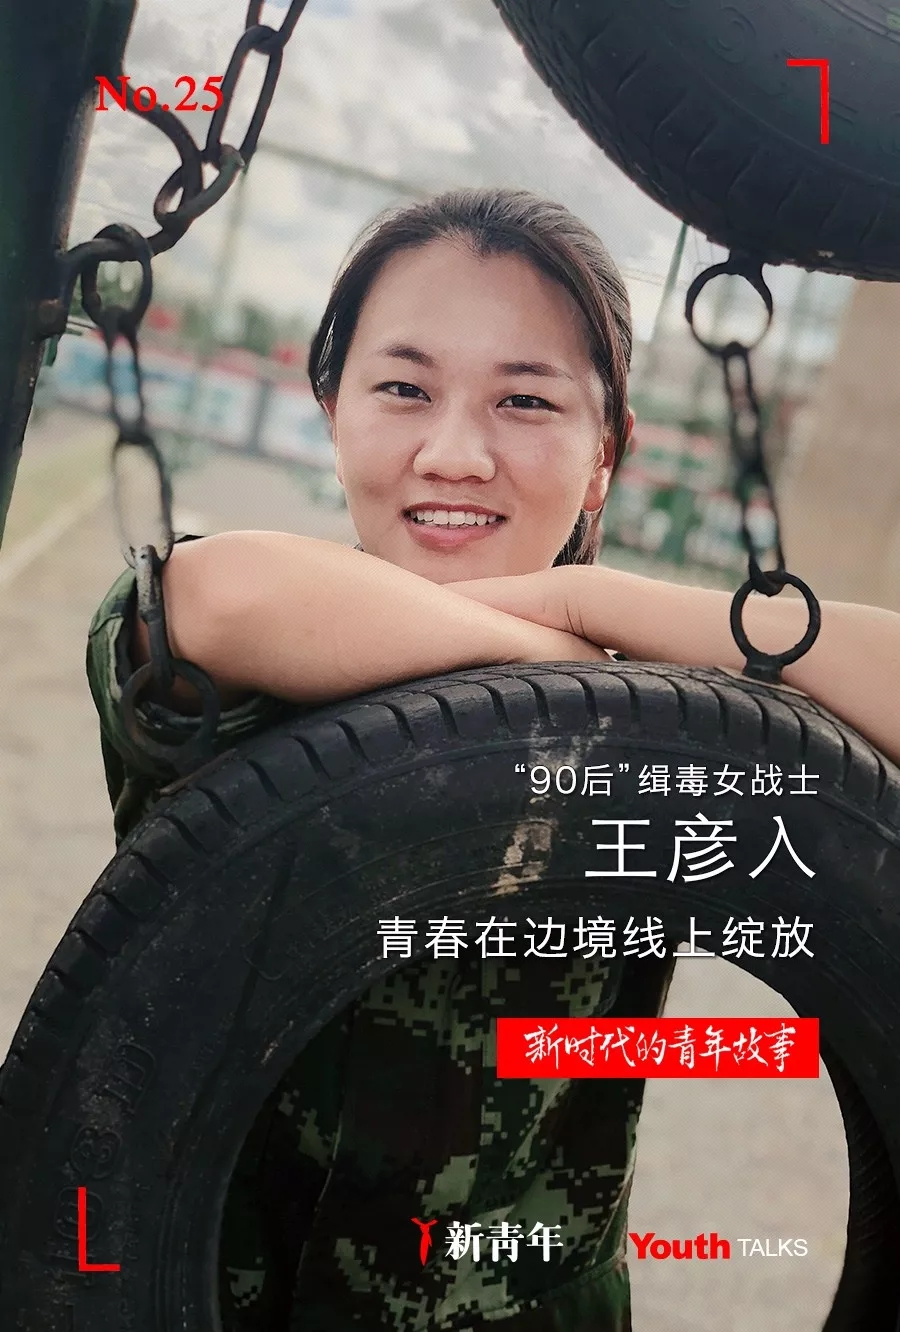 Chinese Female Soldier Shares Story of Capturing Drug Smugglers